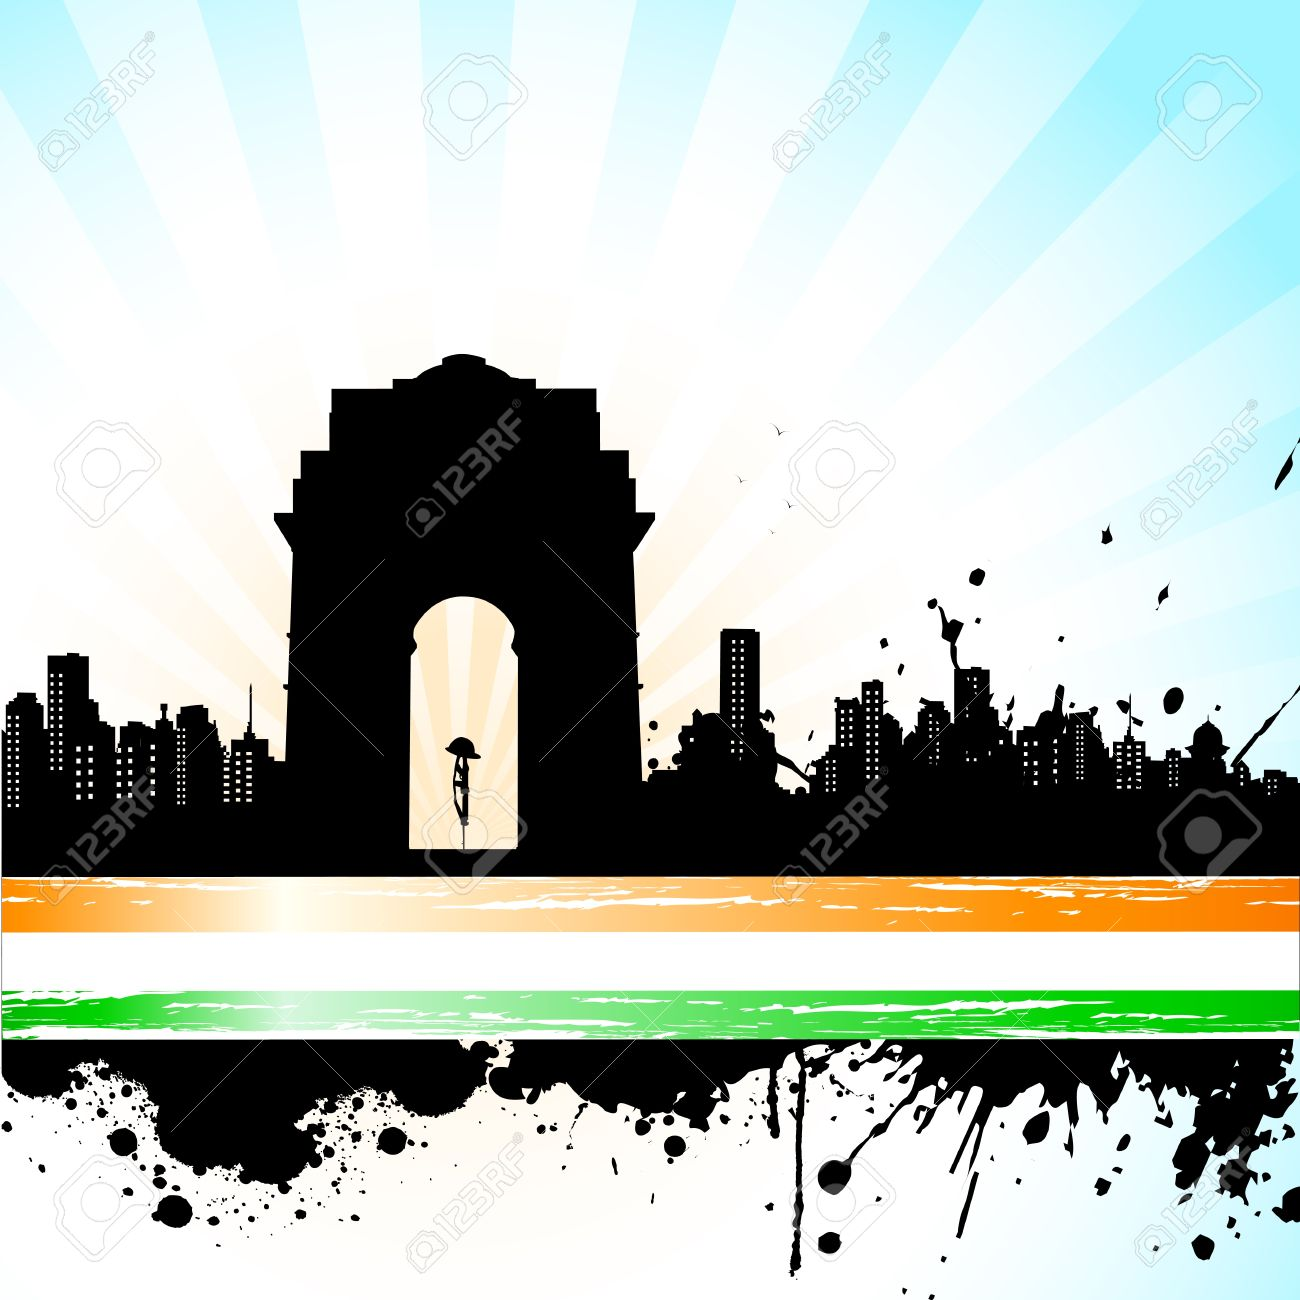 illustration of Indian monument on abstract tricolor background Stock Vector - 11779474